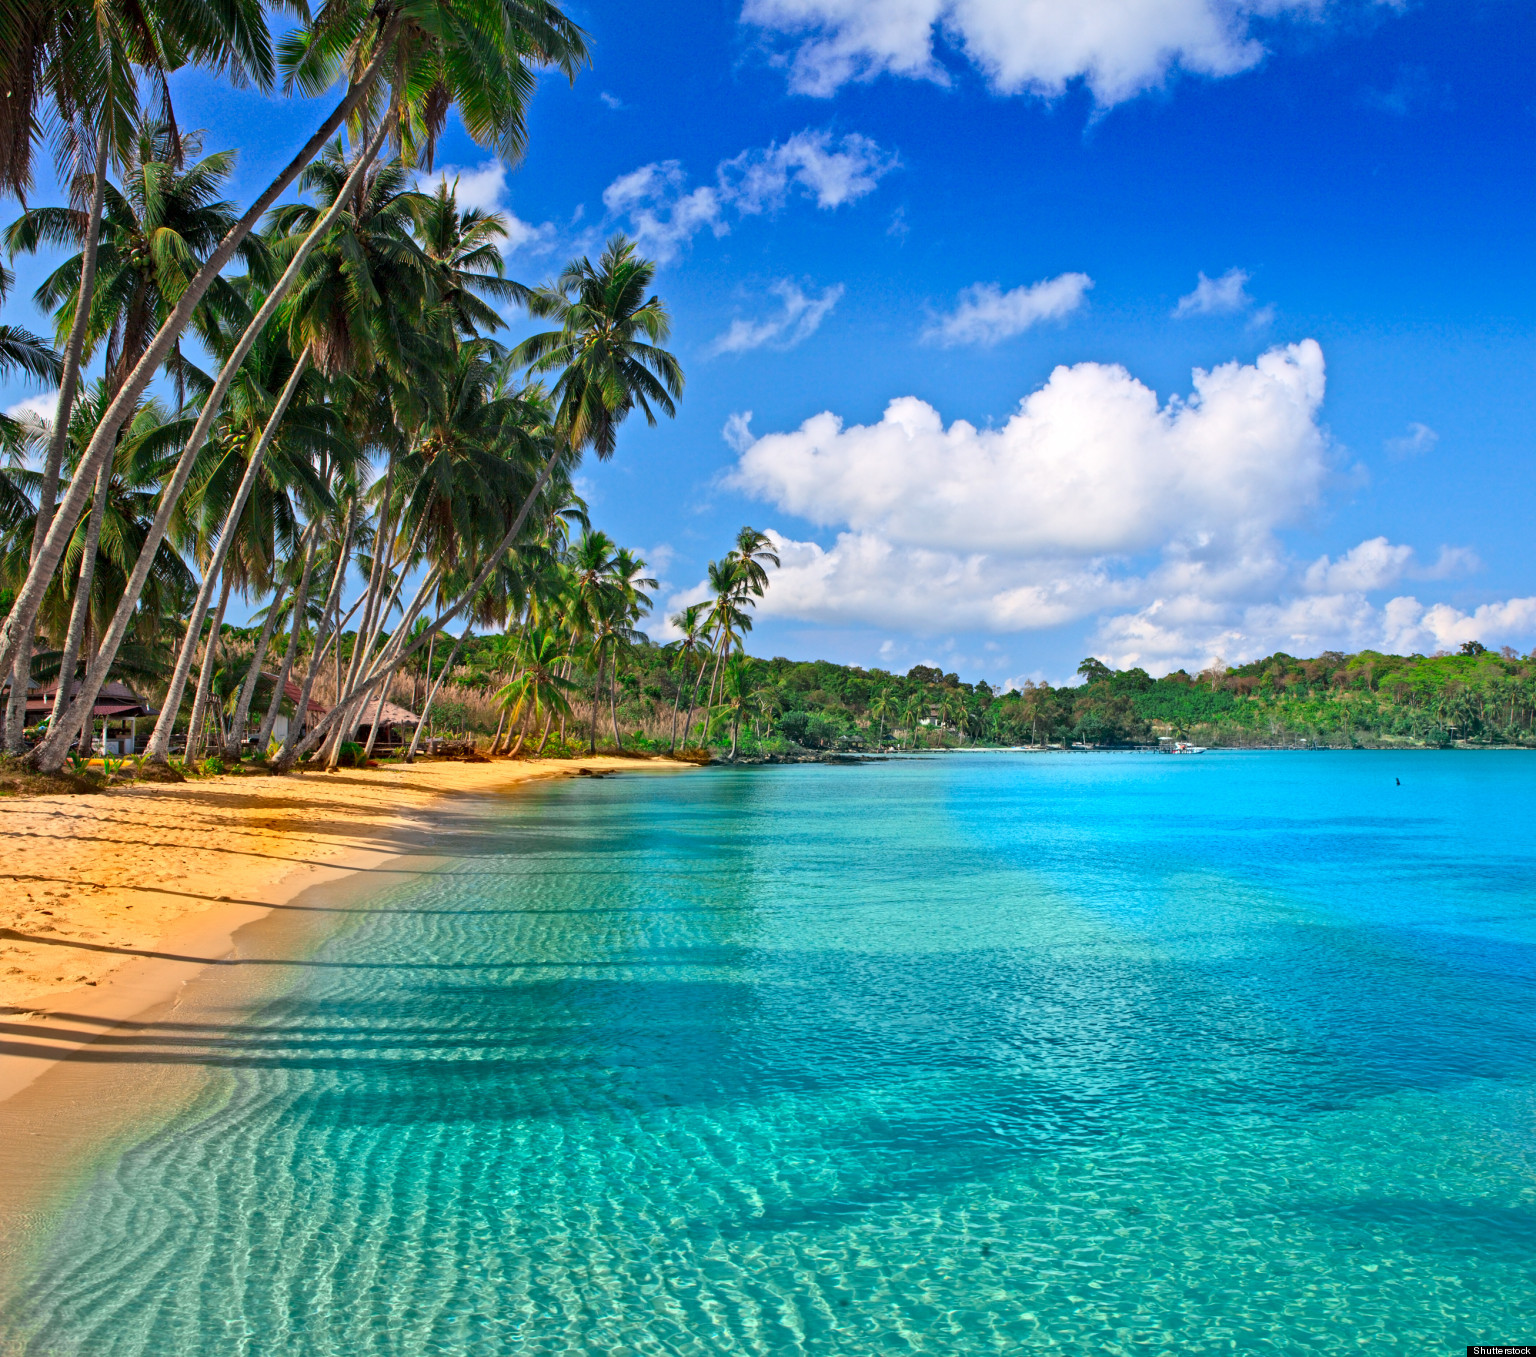 The 11 Sexiest Beaches In The World (PHOTOS) | HuffPost